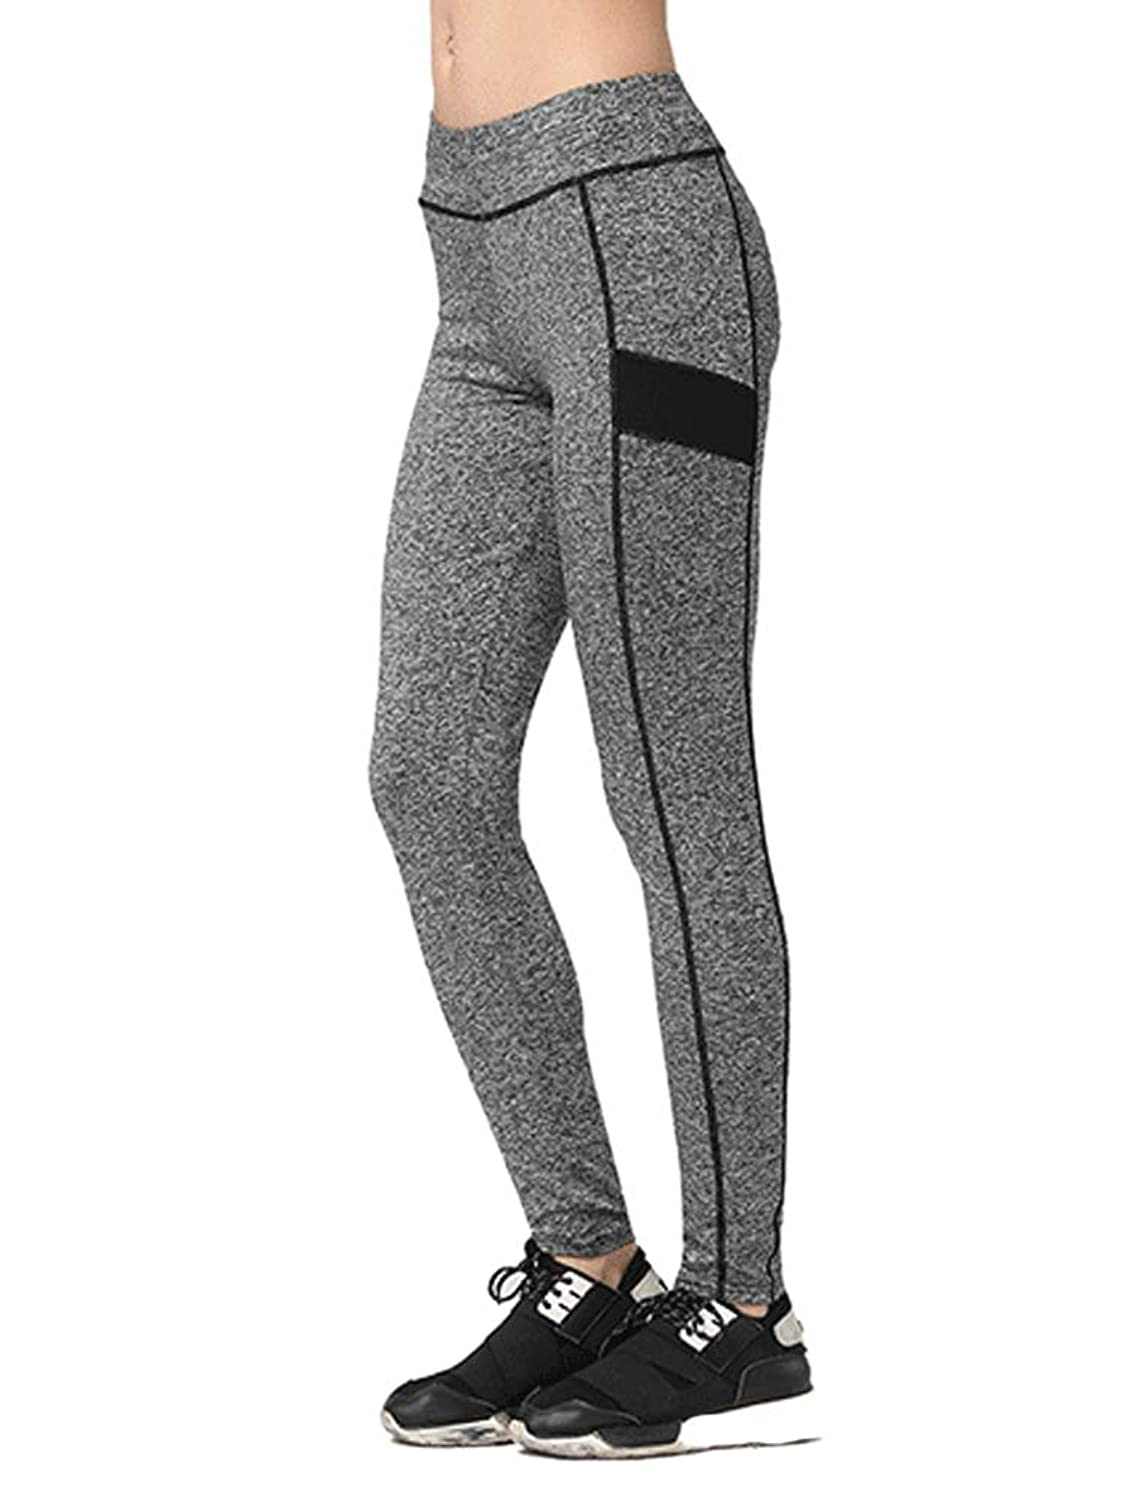 53ce745e6cb92 Flat elastic waistband offers a smooth fit that stays in place. Summer  comfy running shorts with color block waistband. Perfect for yoga,  exercise, ...